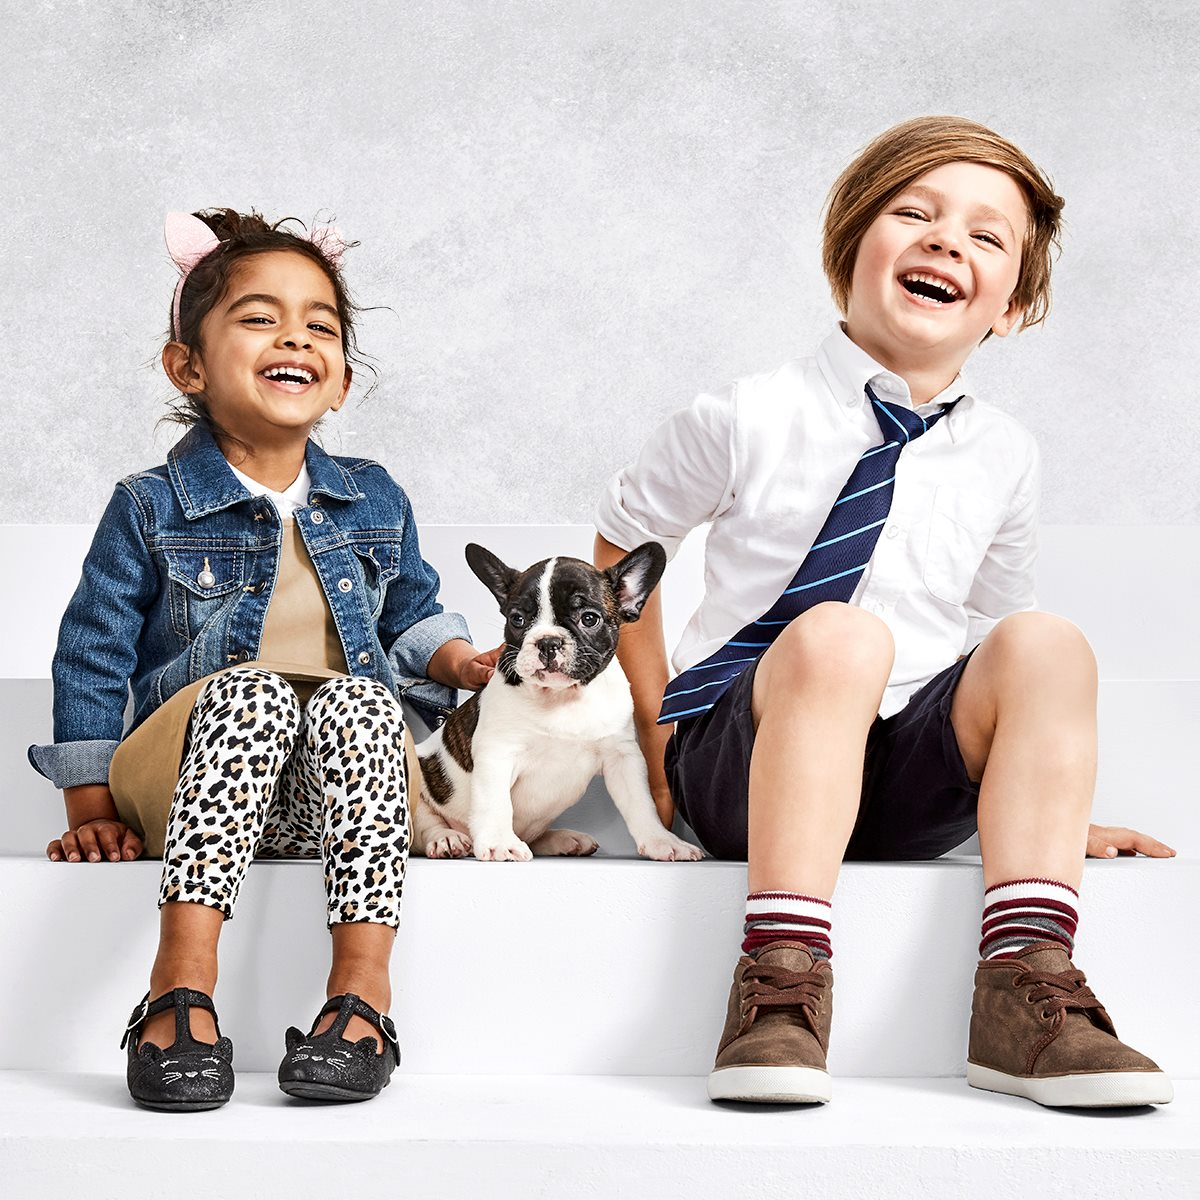 761a2b7dd251d The Children s Place Canada is kicking off their back-to-school sale in  style